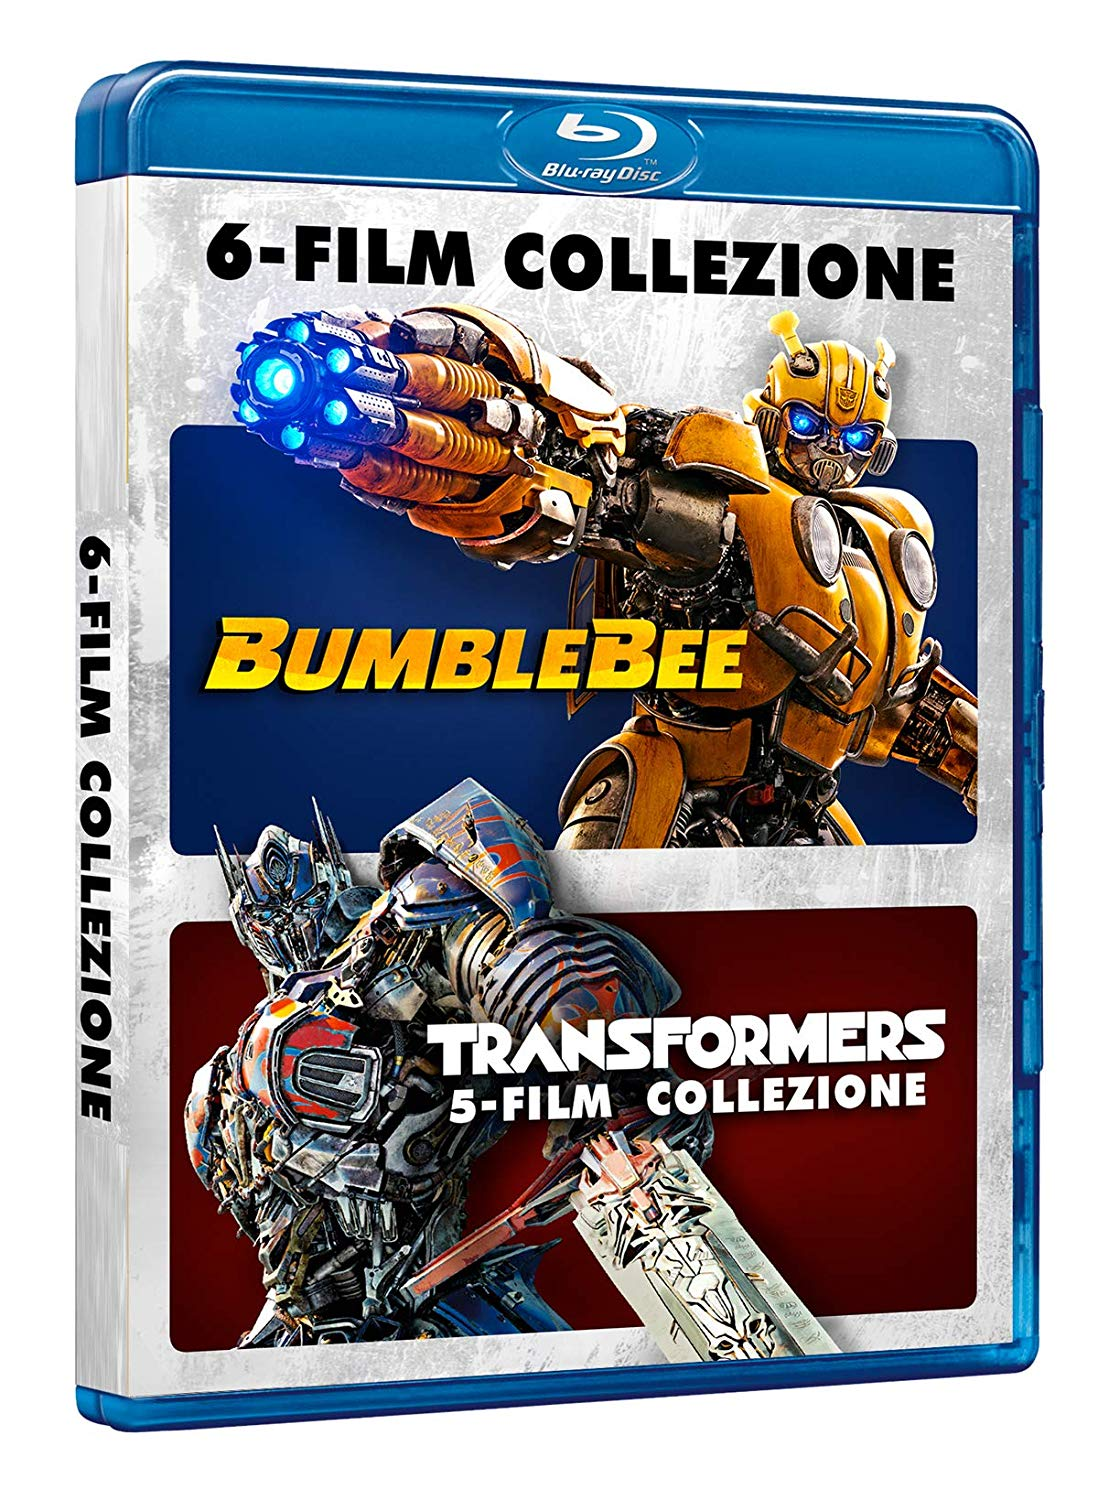 COF.BUMBLEBEE / TRANSFORMERS COLLECTION (6 BLU-RAY)